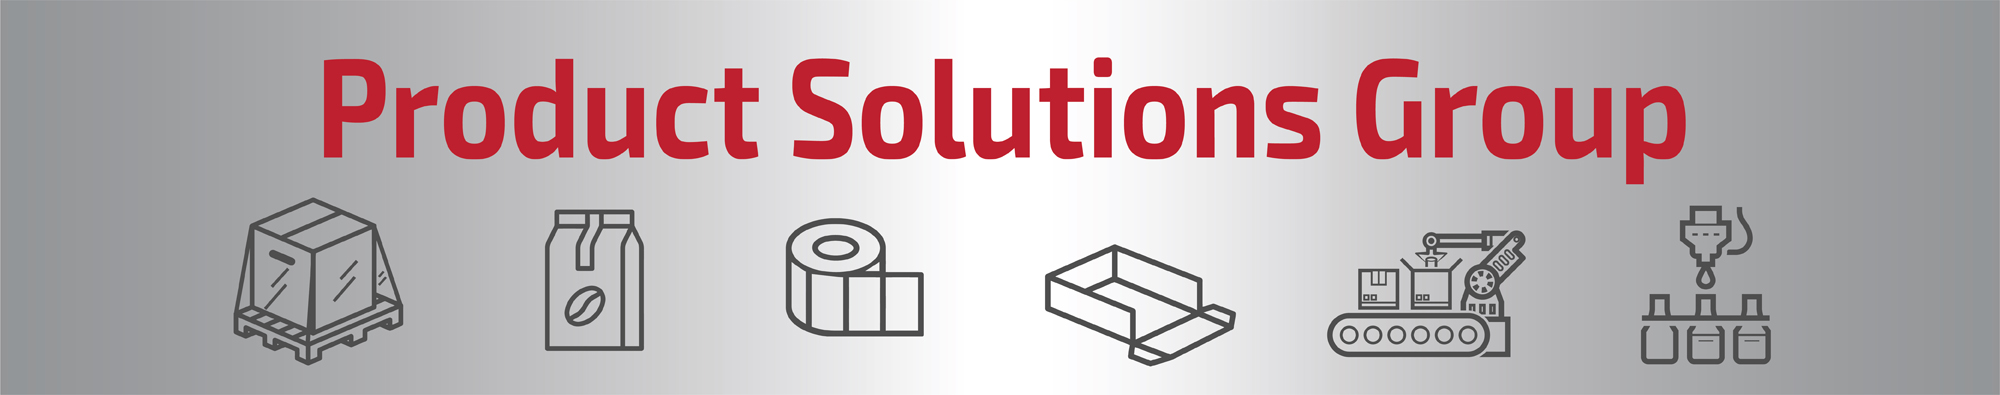 Delta Tech Product Solutions Group